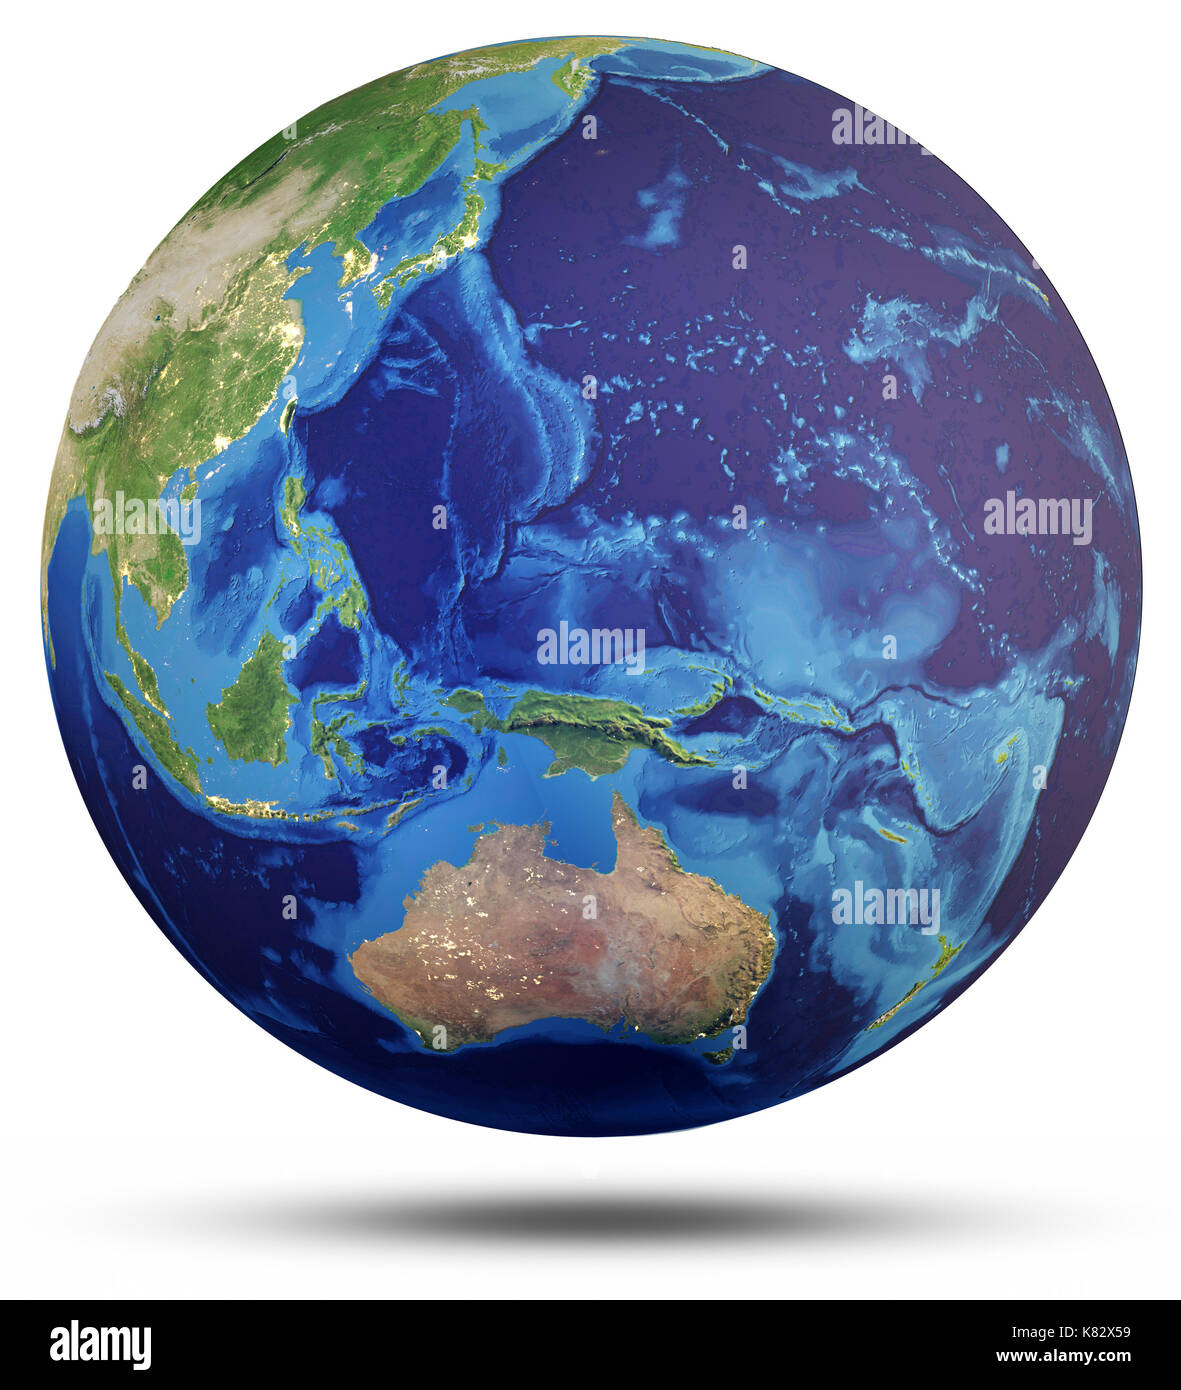 Planet Earth world globe 3d rendering - Stock Image